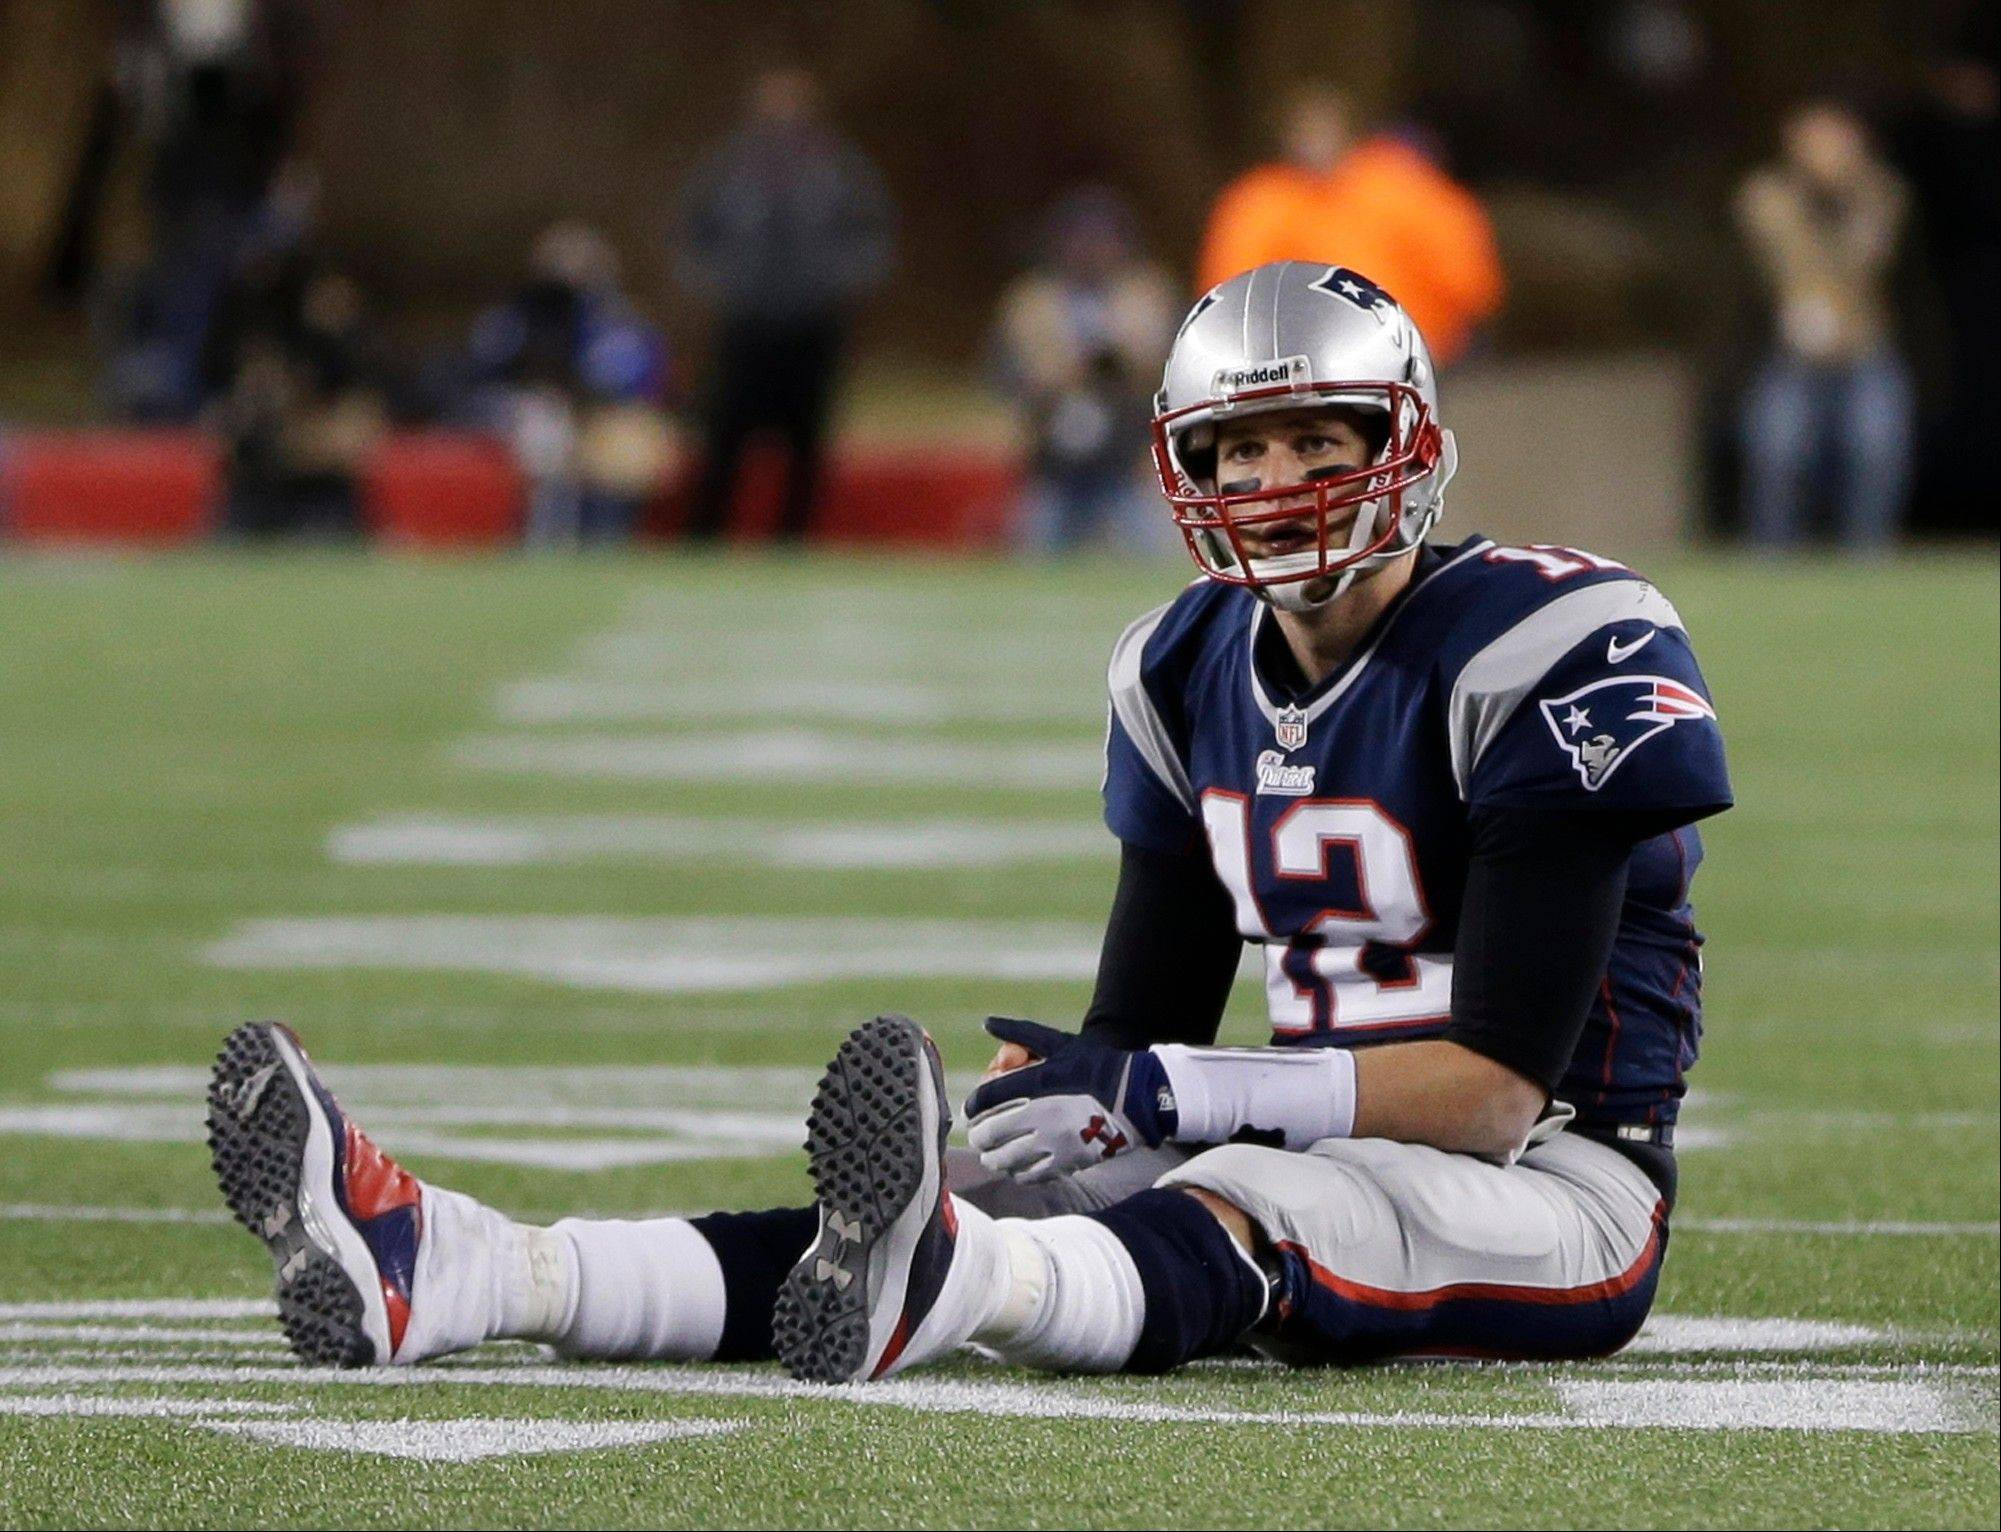 New England Patriots quarterback Tom Brady sits on the field after getting hit during the second half of the NFL football AFC Championship football game against the Baltimore Ravens in Foxborough, Mass., Sunday, Jan. 20, 2013. Brady was fined Wednesday for kicking Ed Reed in the thigh during the game.